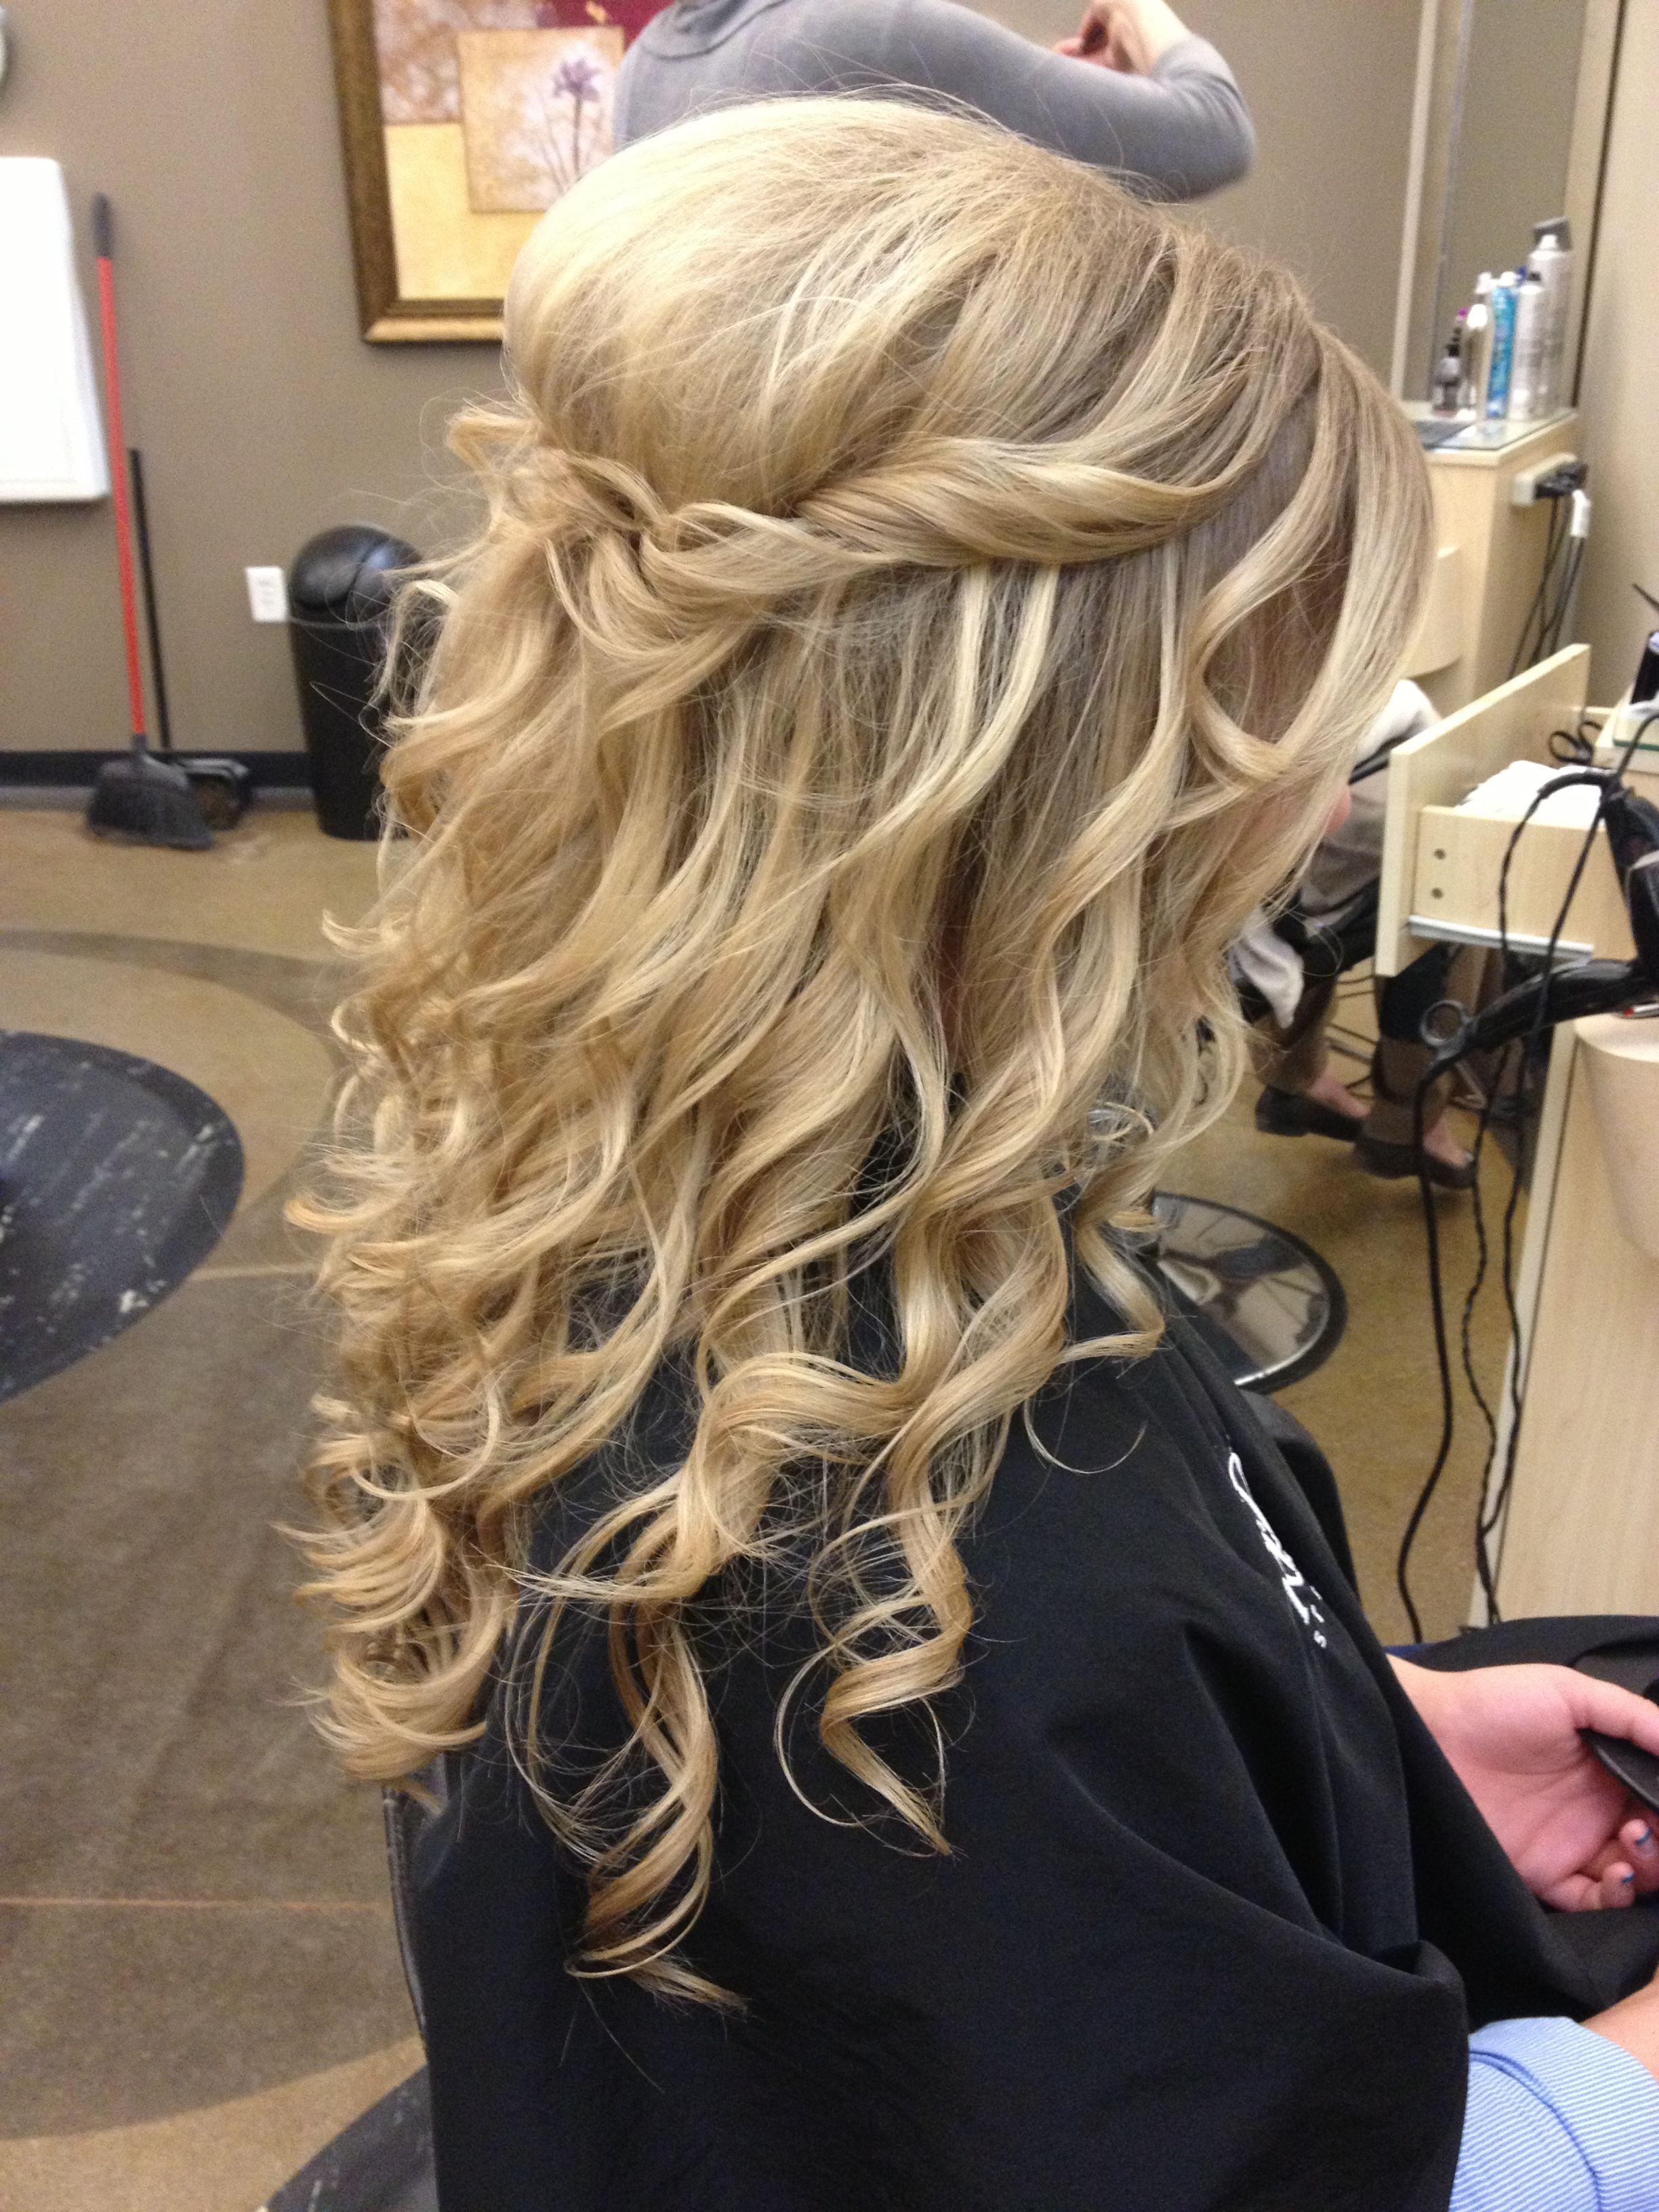 23 prom hairstyles ideas for long hair | hair styles i love